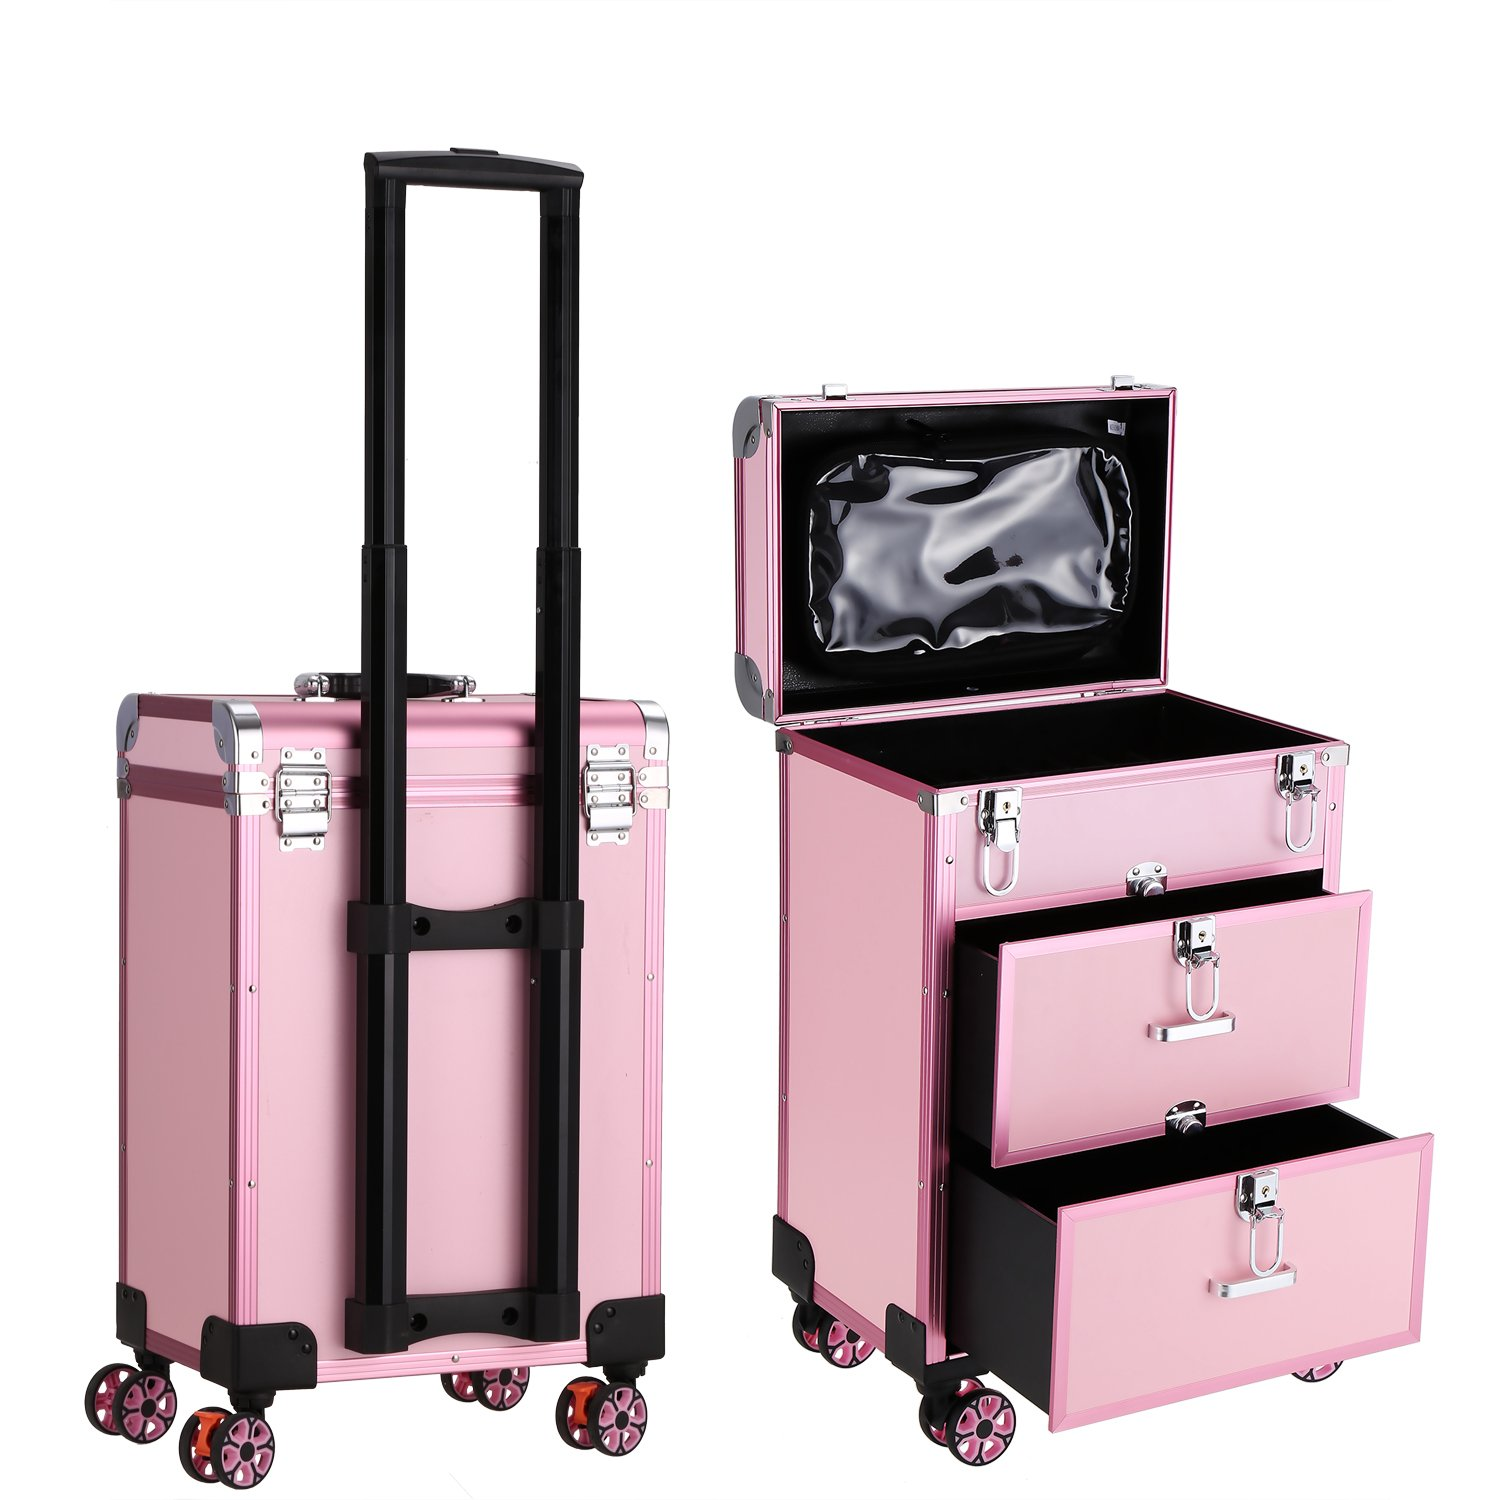 Oanon Multifunction Professional Aluminum Artist Cosmetic Makeup Train Cases, Salon Beauty Cosmetic Trolley Organizer 4-wheel Rolling with Keys Pink (13.3 x 9.4 x 19.9inch)